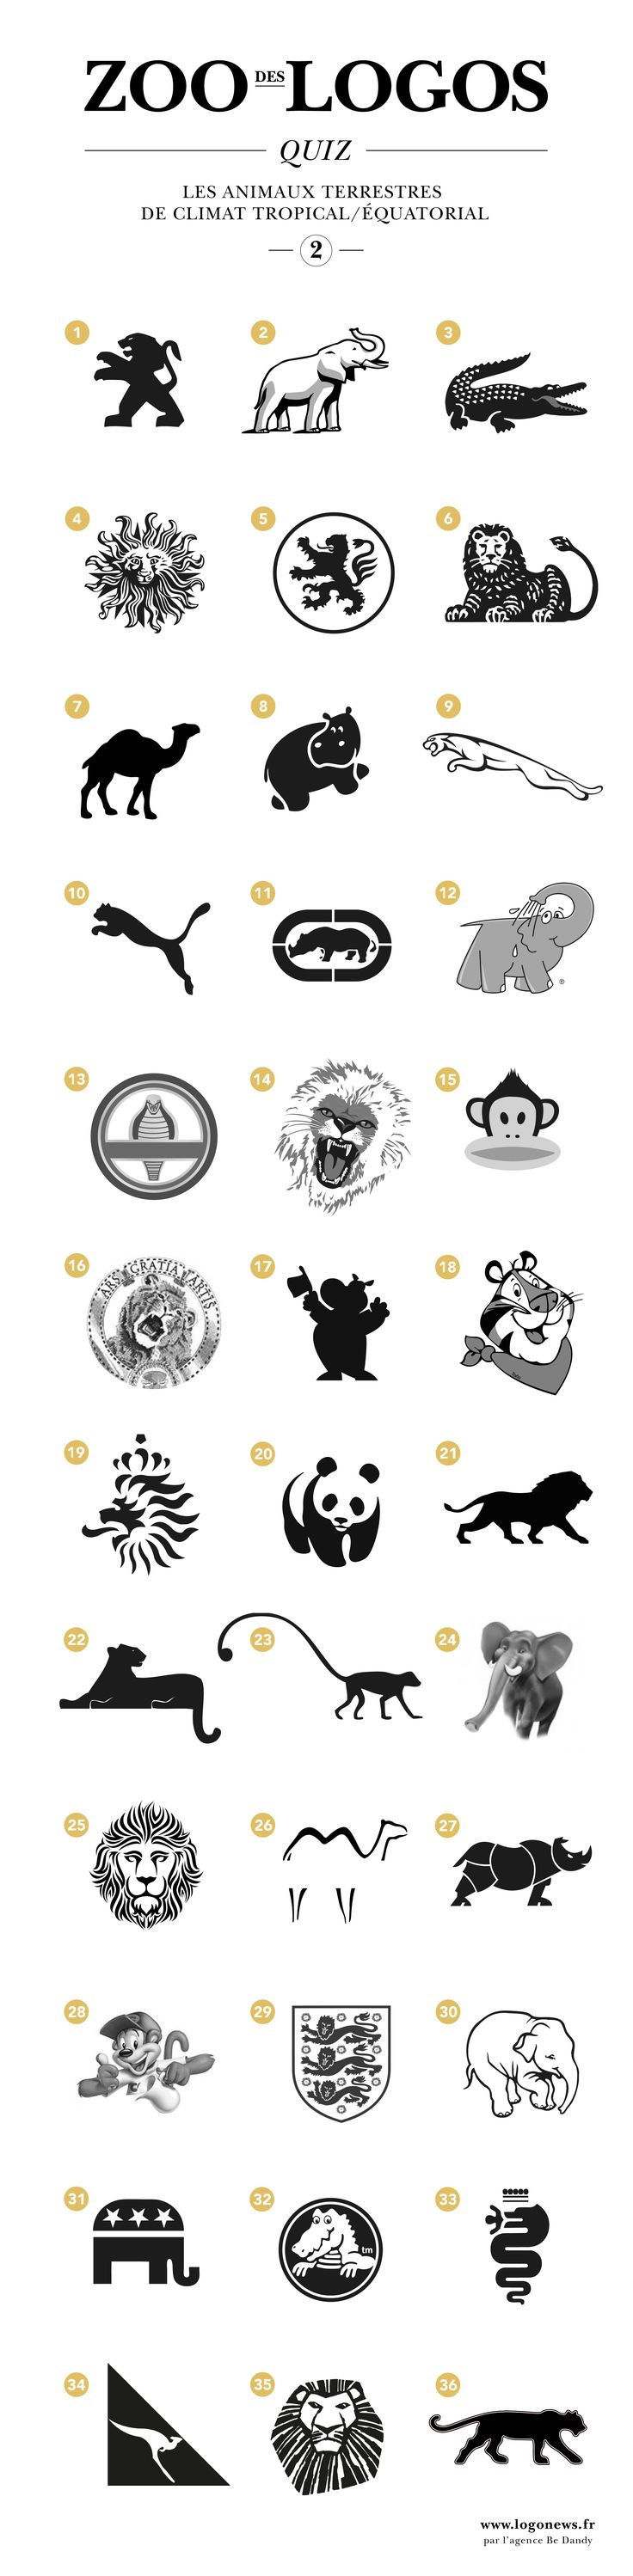 Zoo logos #logo #animal